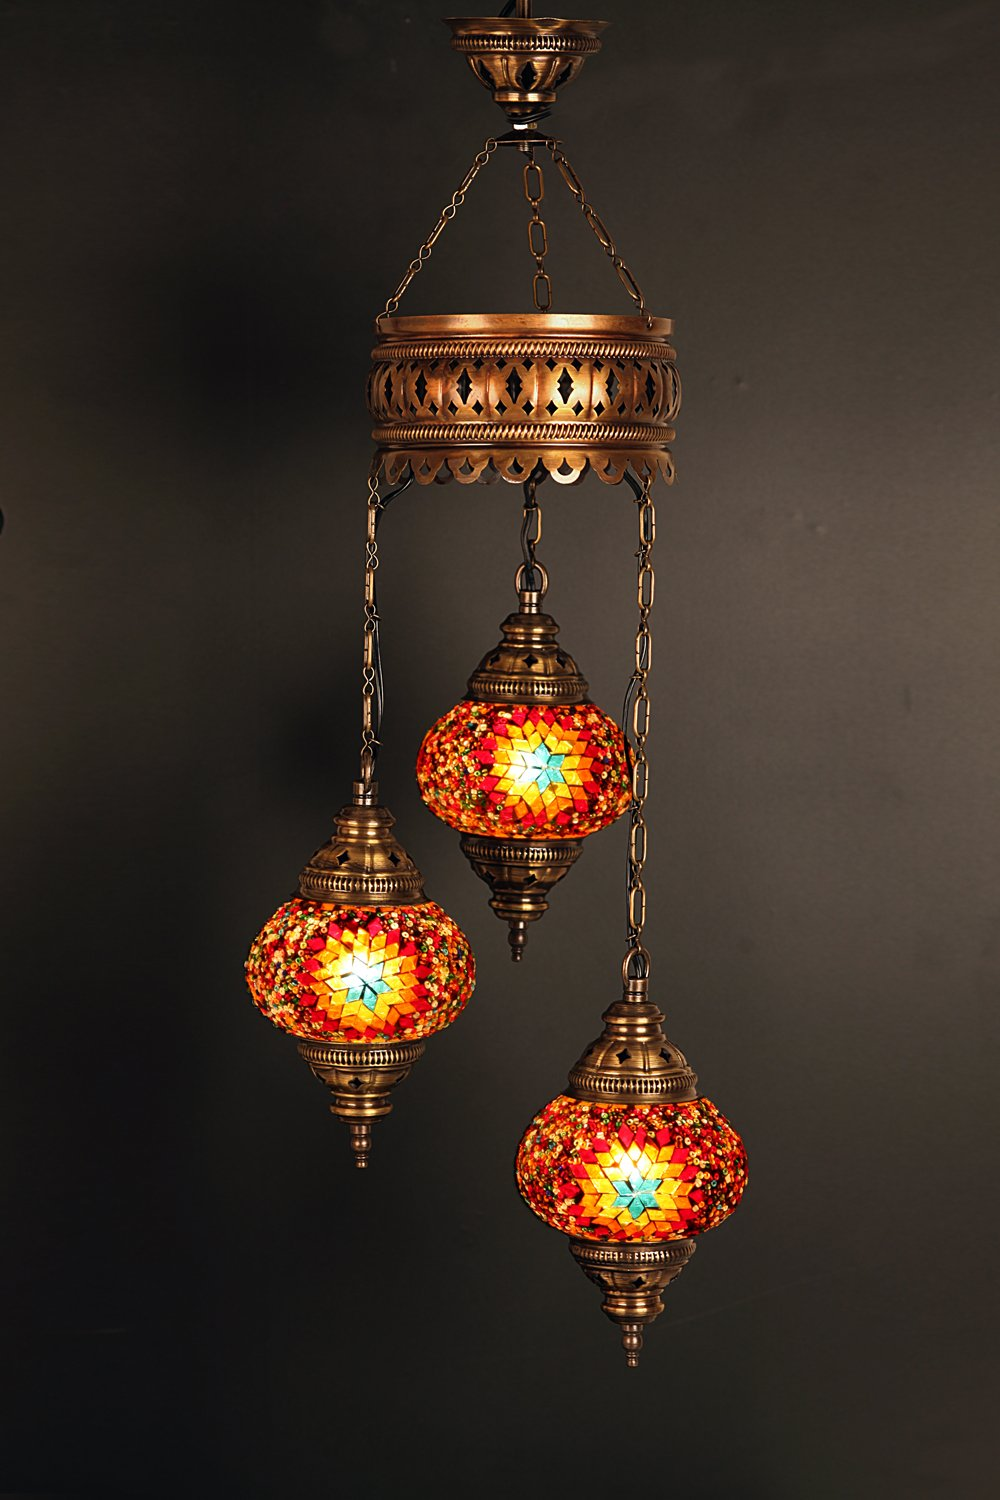 (Height: 23.6 in) Mosaic Chandelier Set 3 Globes, Handmade Authentic Tiffany Lighting Moroccan Lamp Glass Stunning Bedside Night Lights Brass&Glass Ottoman Turkish Style